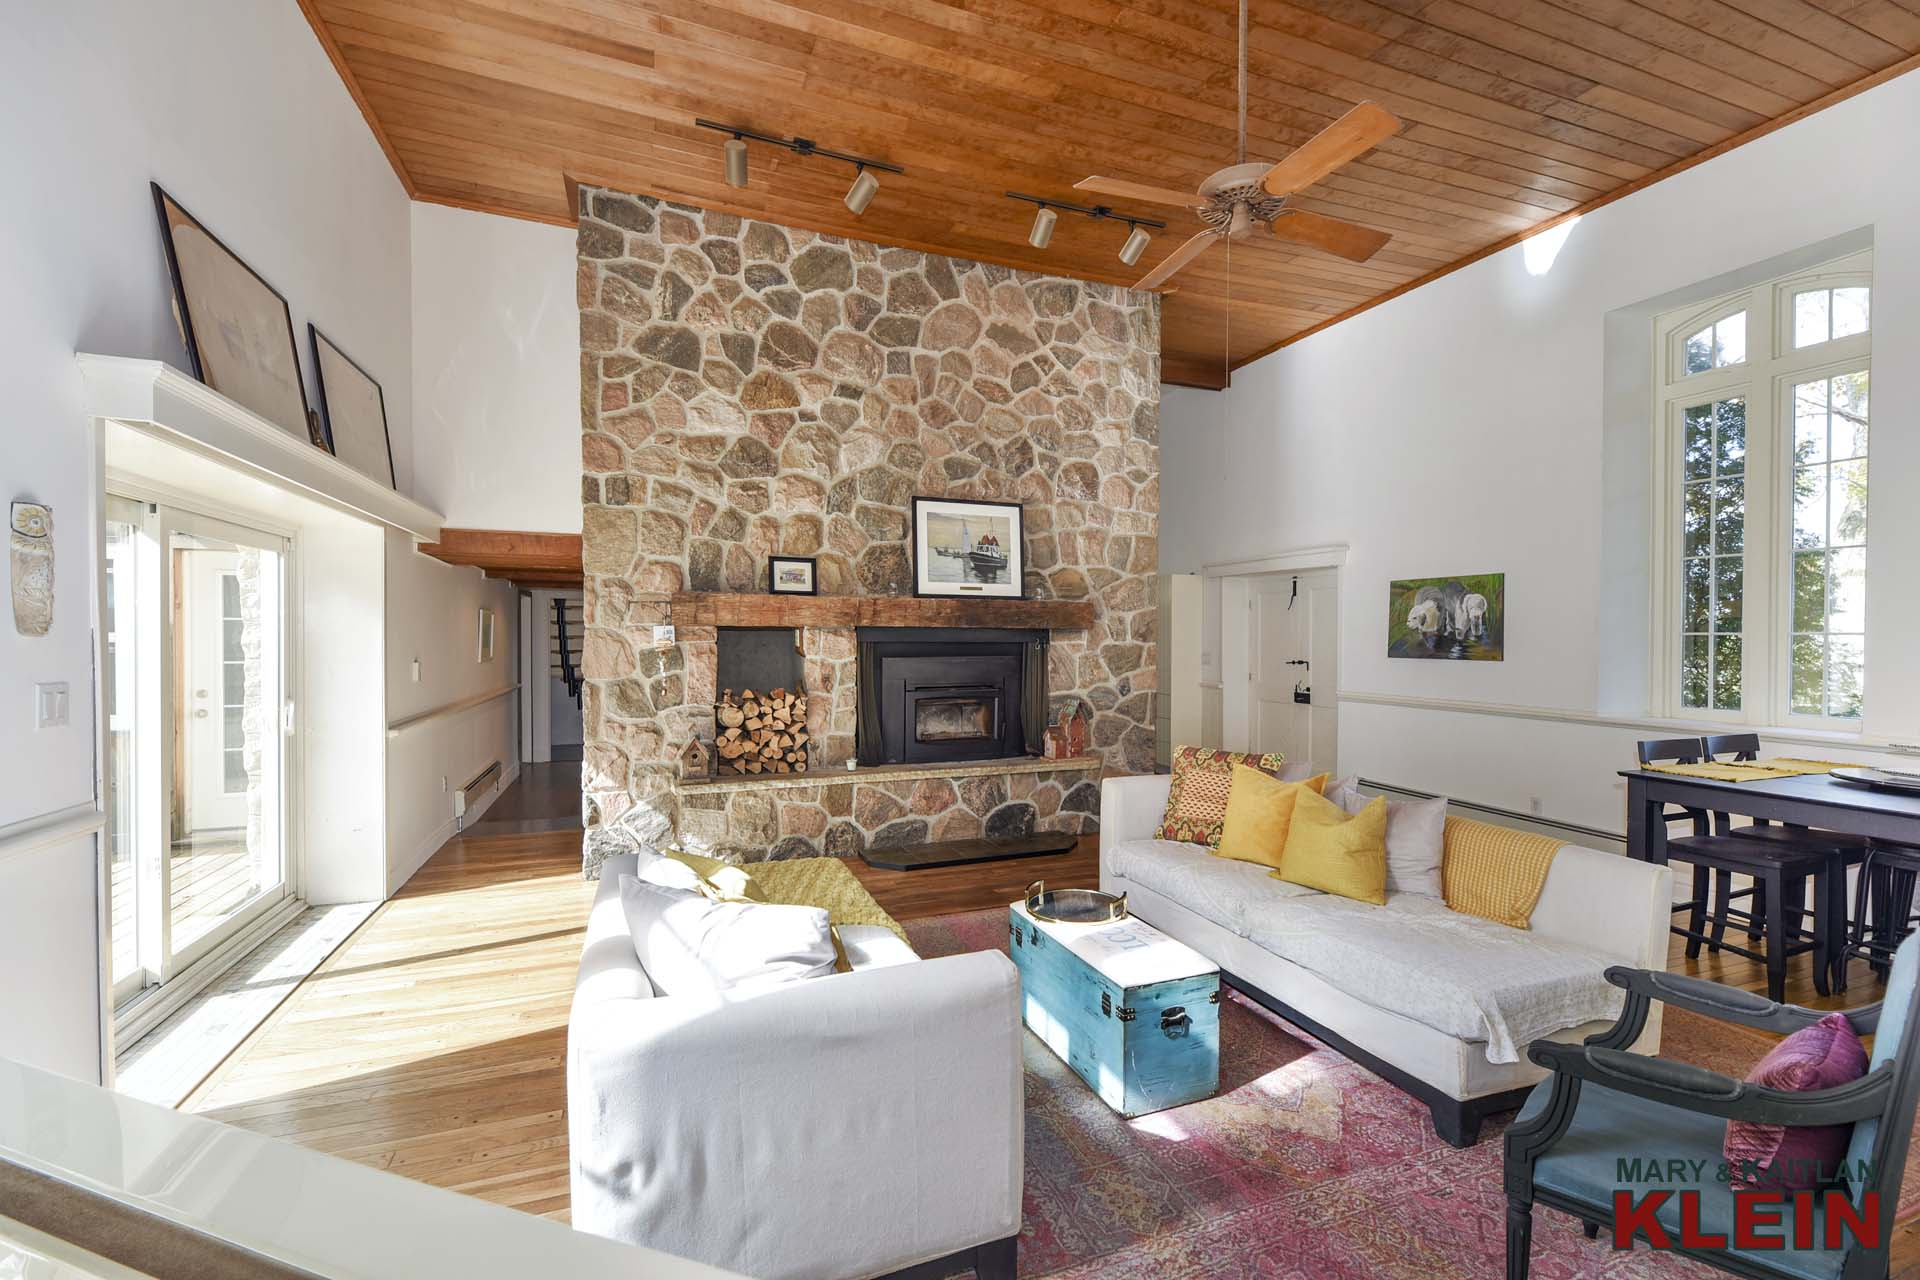 floor-to-ceiling stone wood burning fireplace with wooden mantel